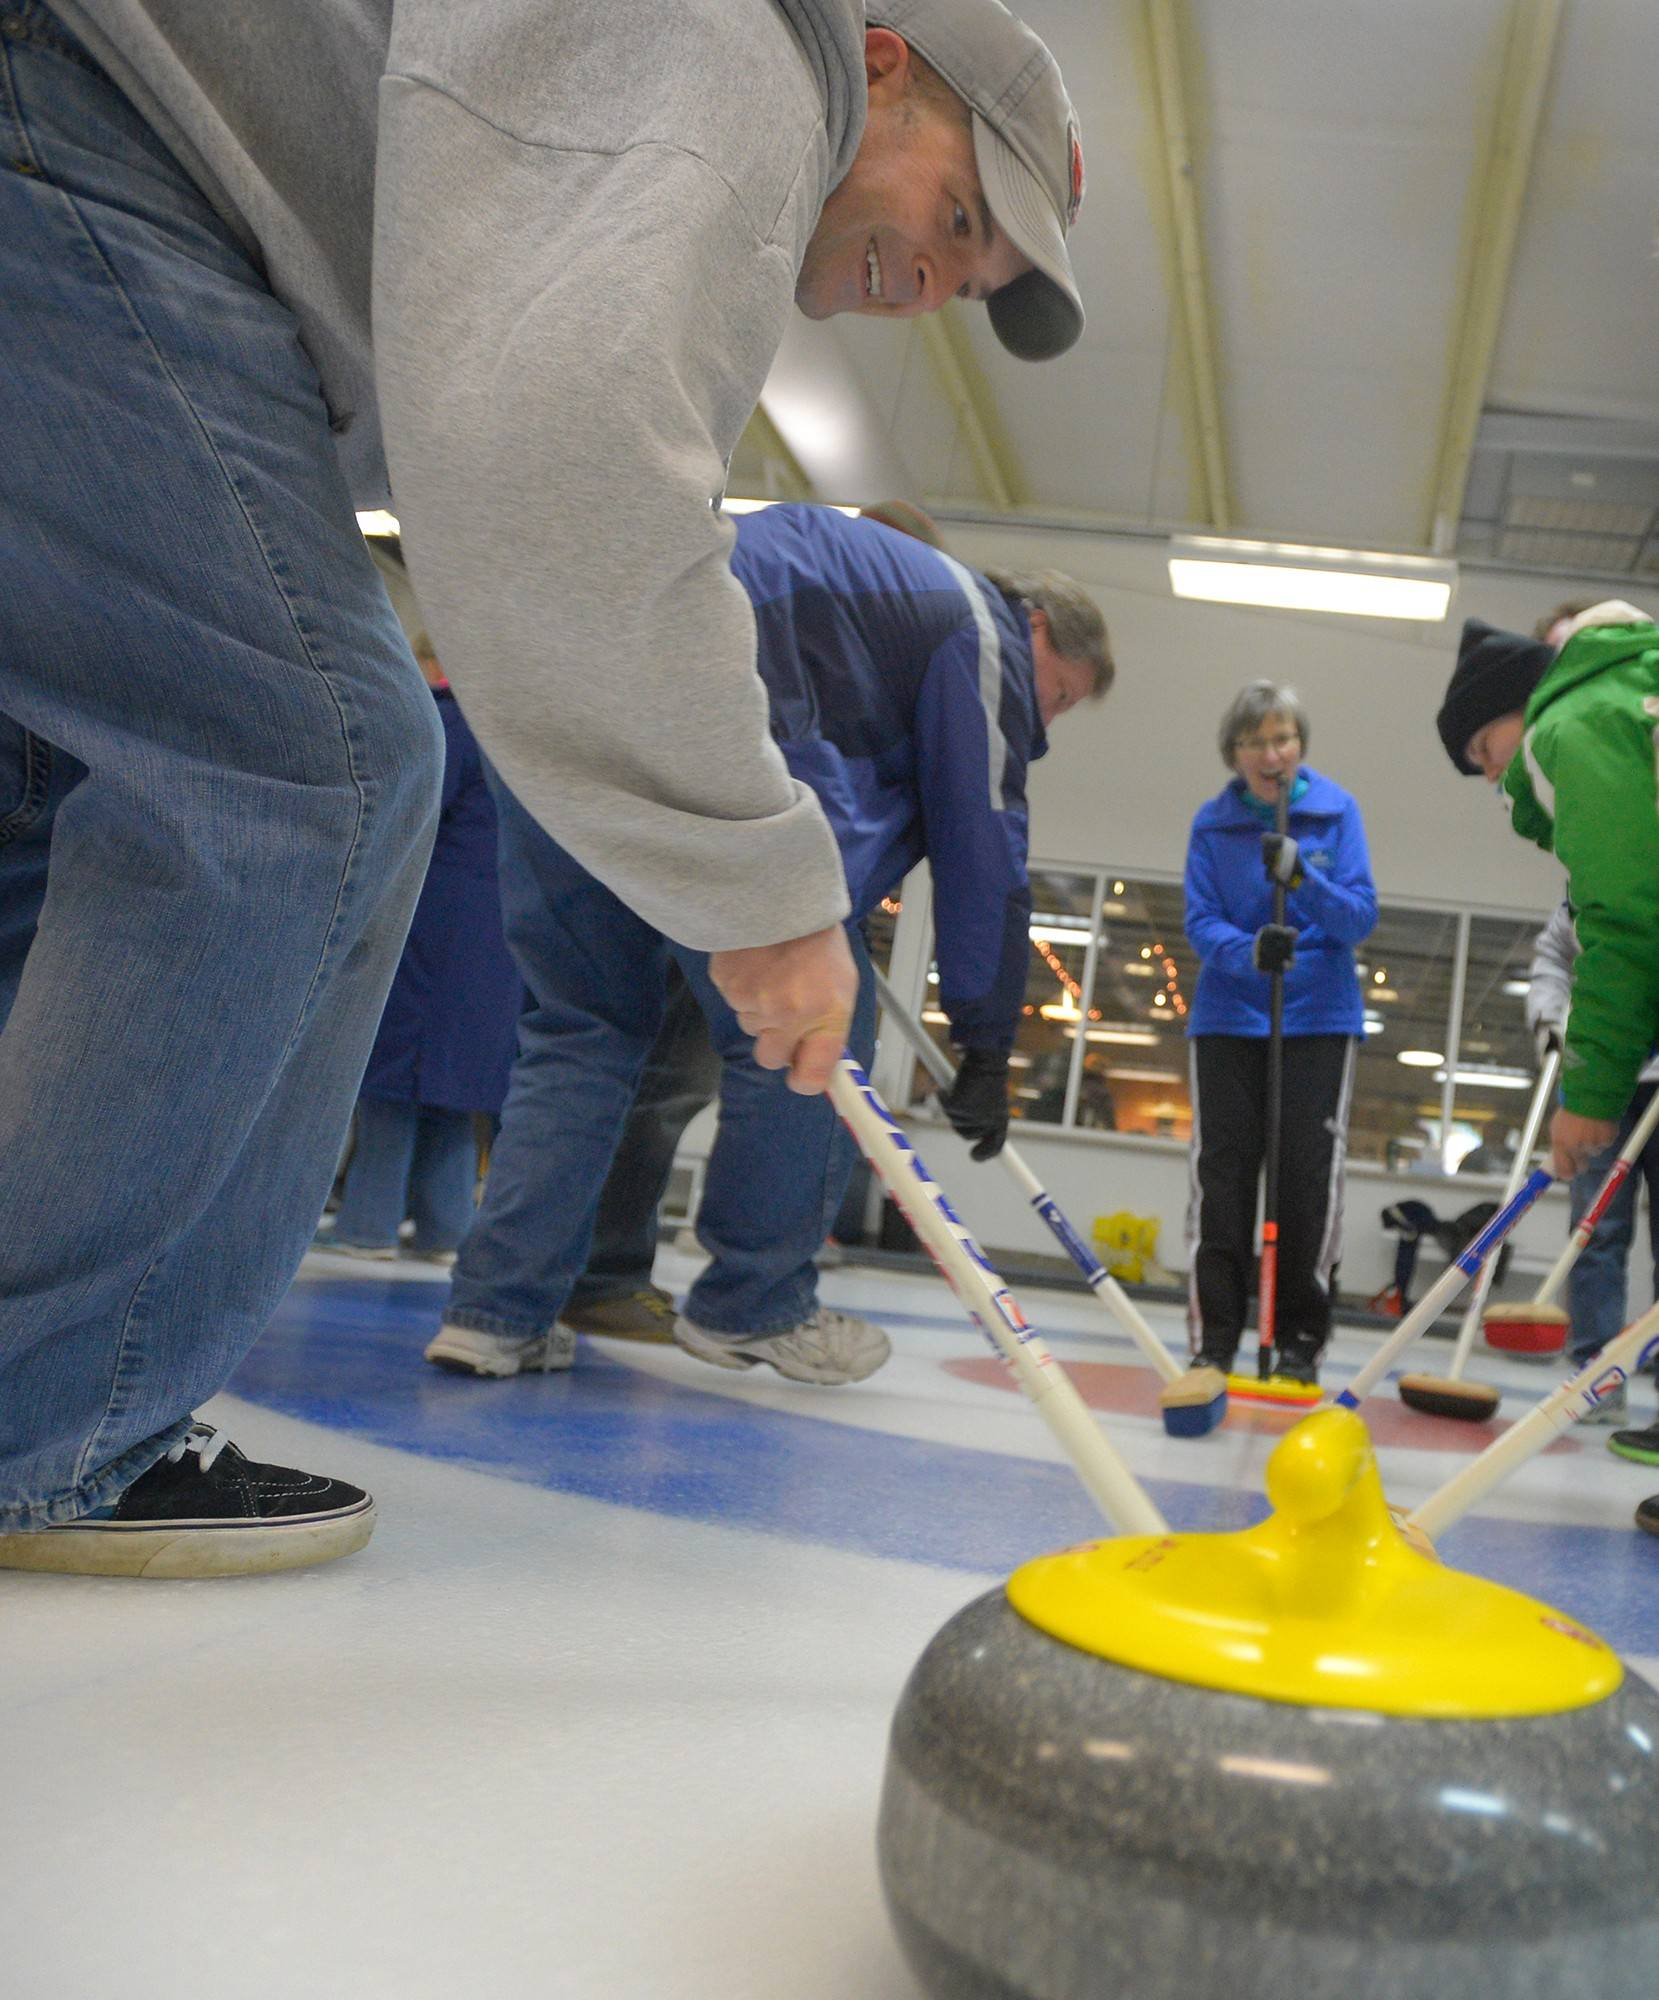 J.D. Oltman practices his sweeping skills with other novices ahead of a moving rock.